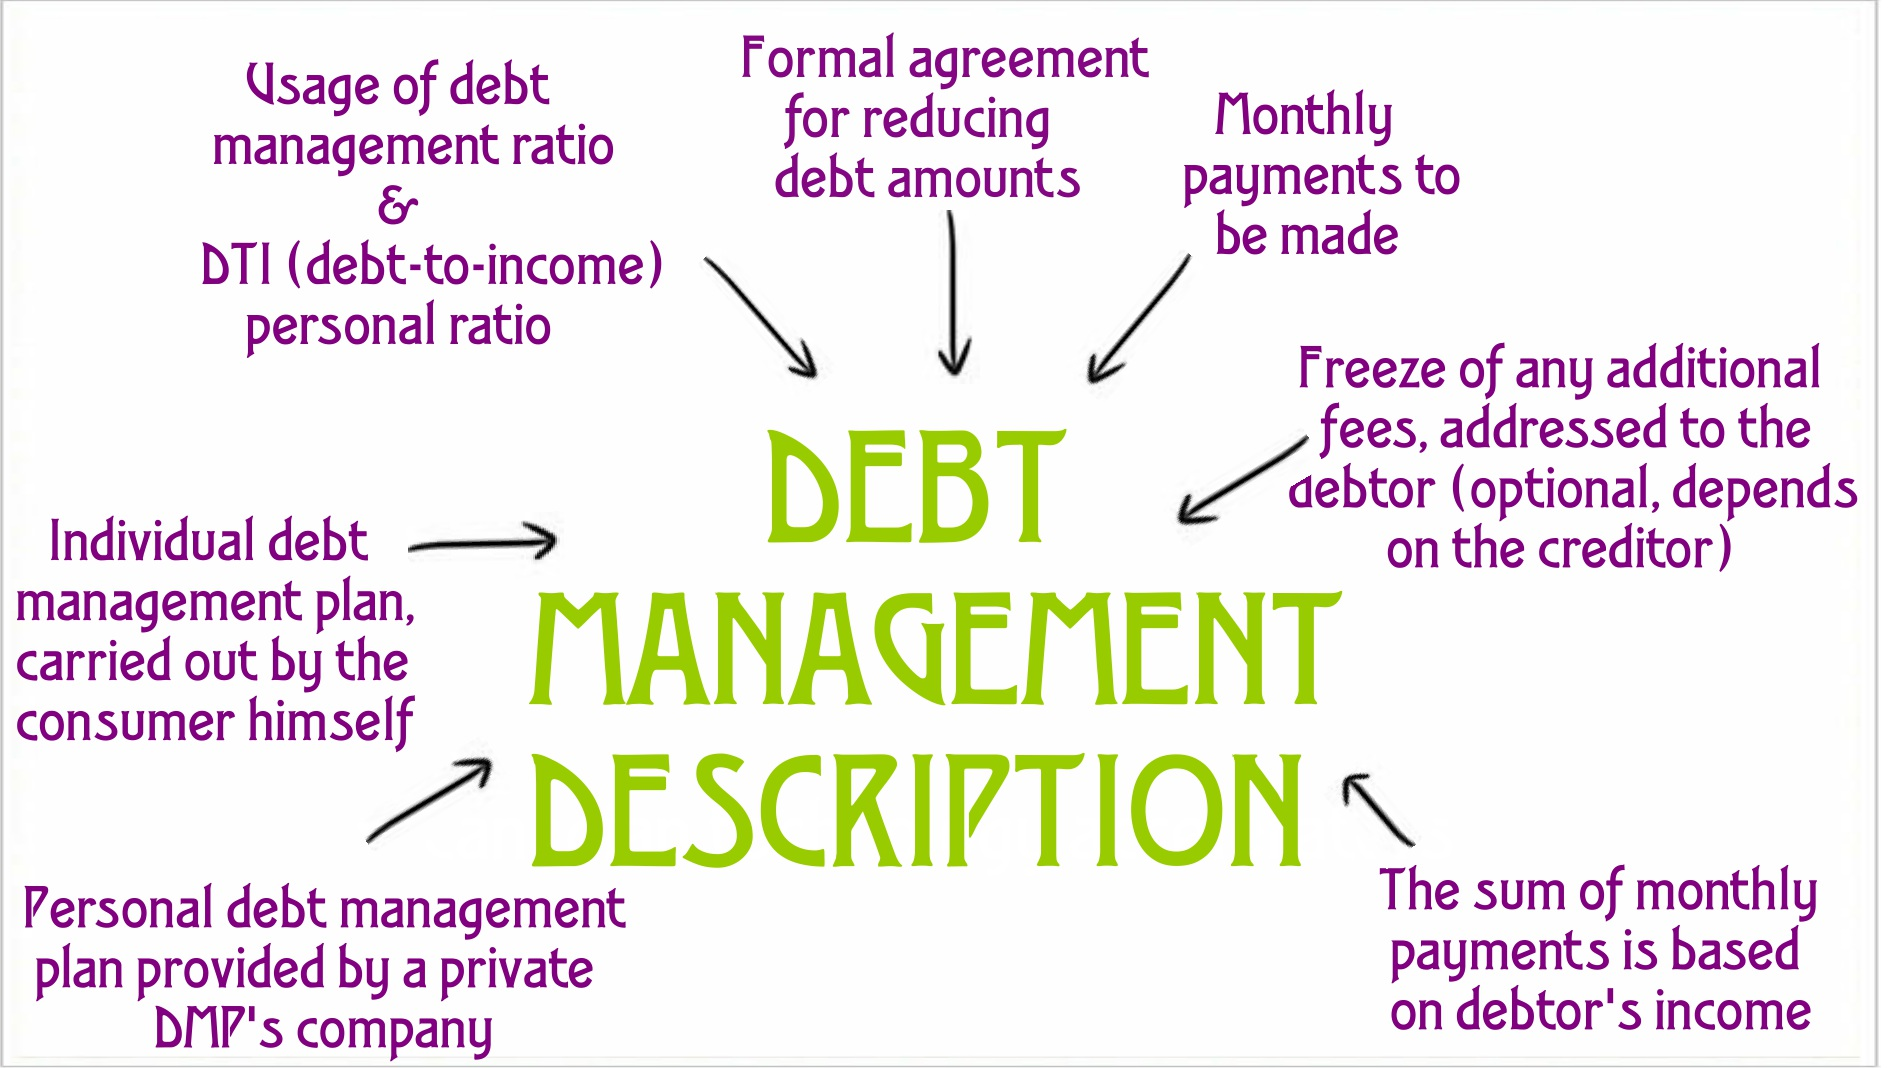 debt management Find out why dave ramsey says debt management companies are a dangerous way to try to get out of debt.